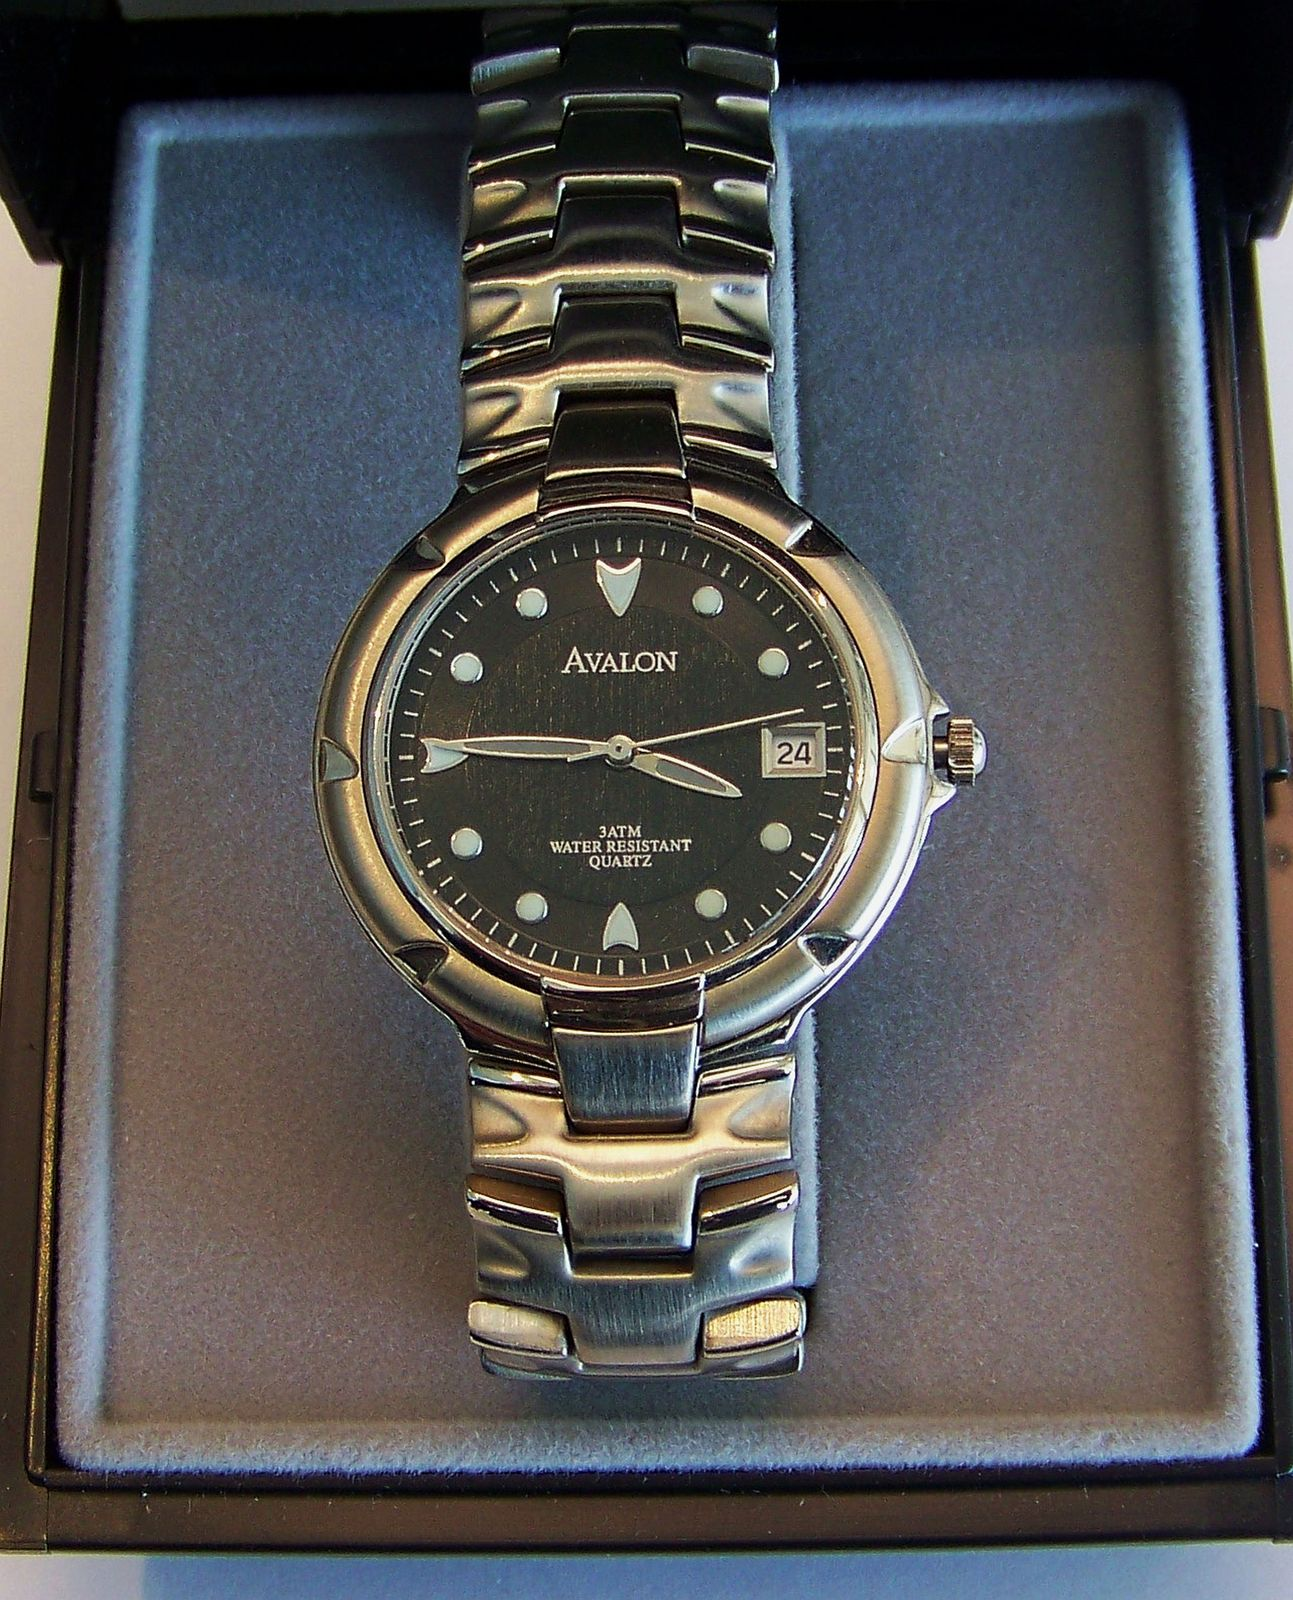 Avalon Quartz Sport Wristwatch in Steel with Black Dial And Date